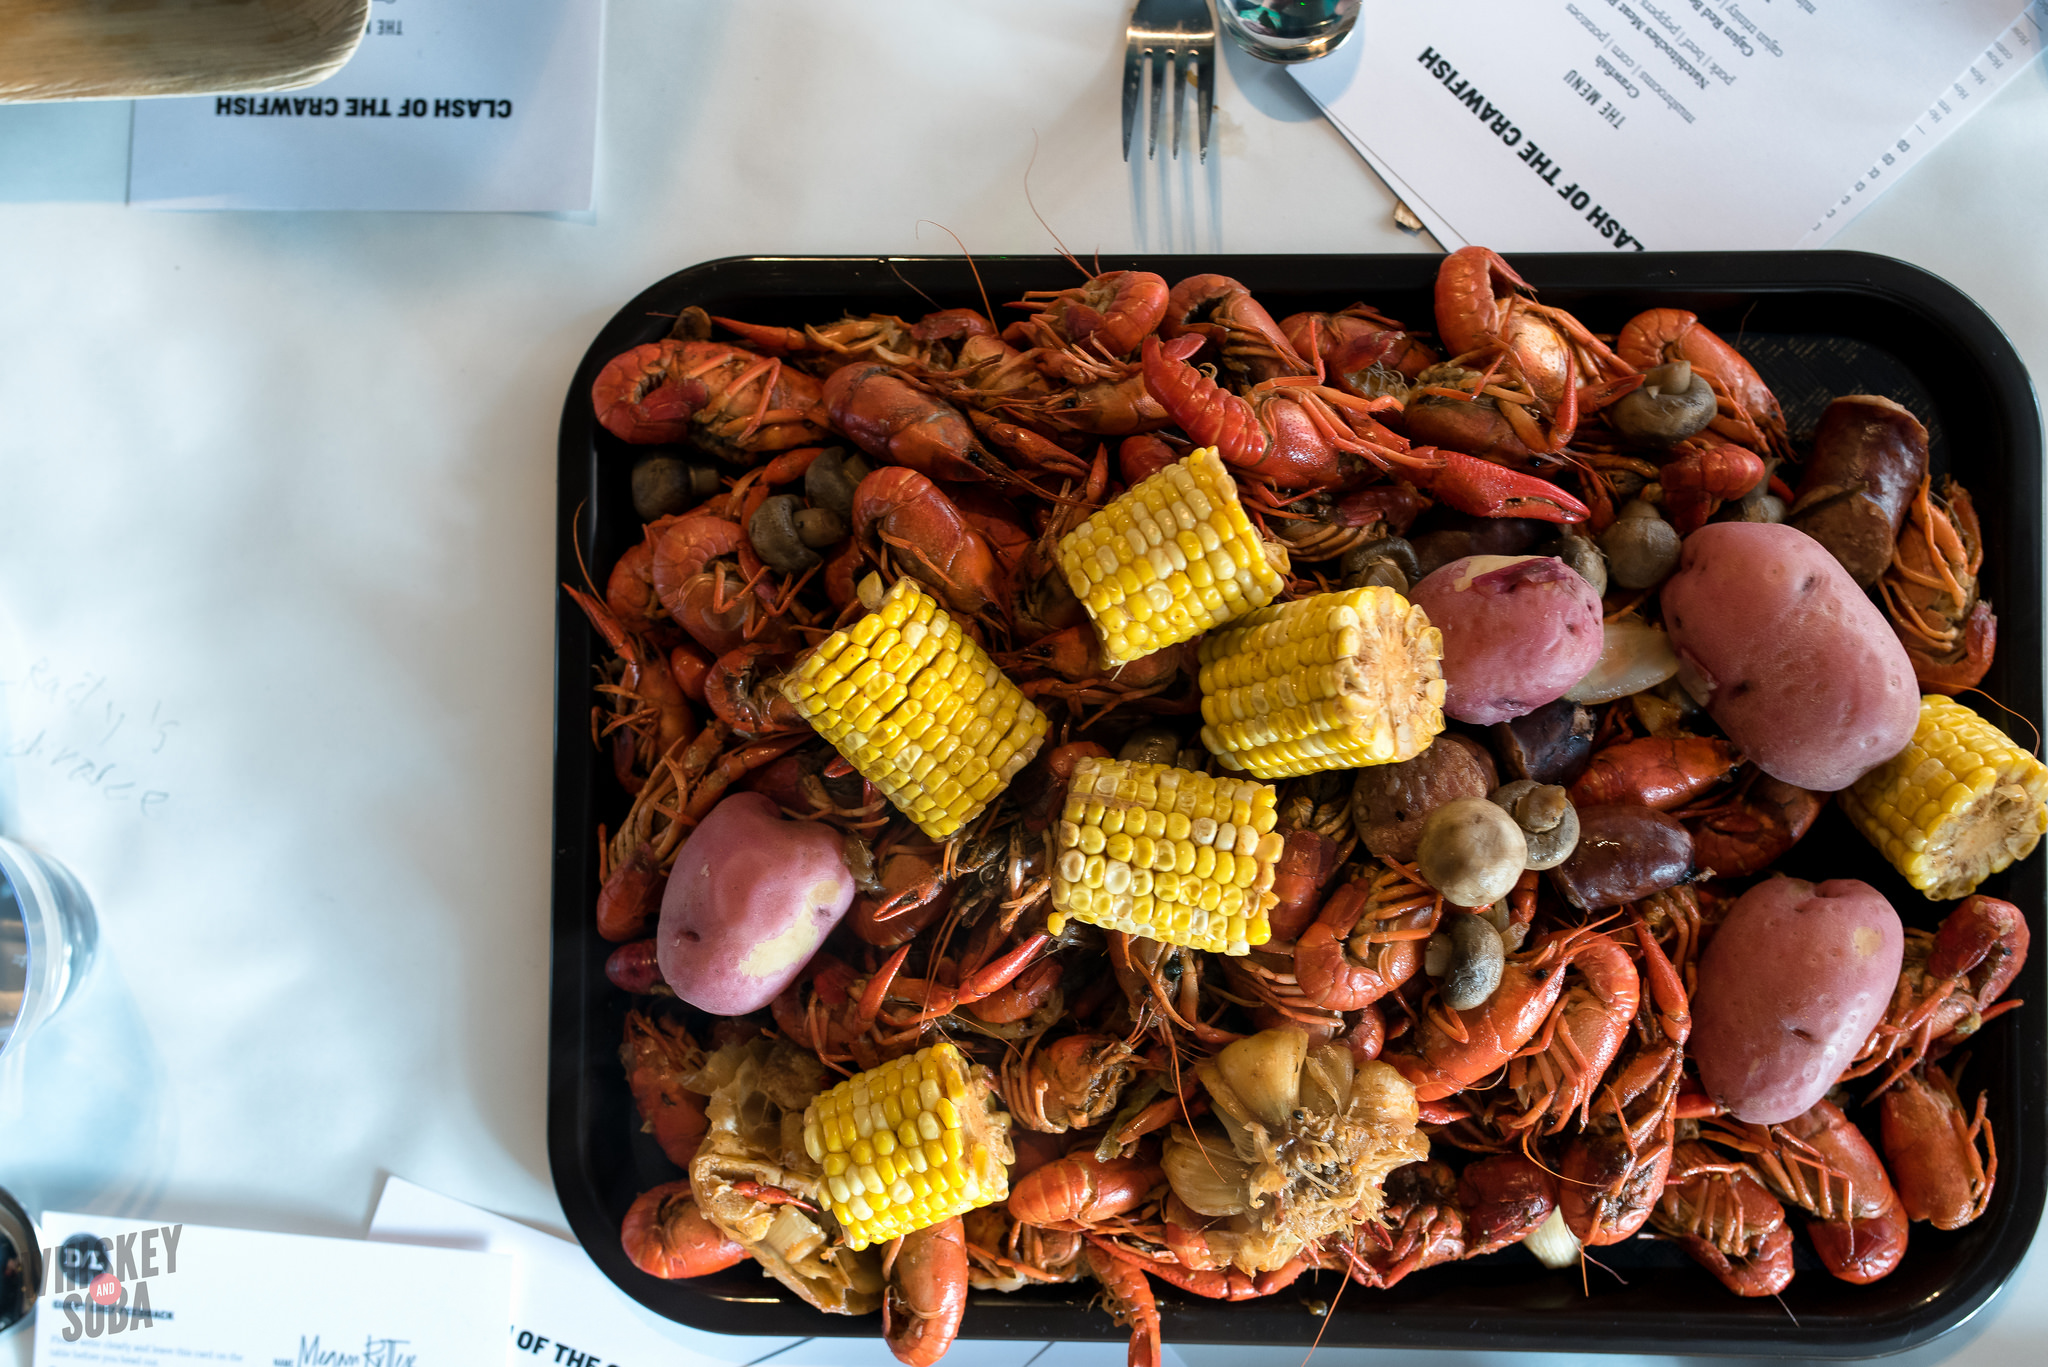 Tray at the Dinner Lab Crawfish Boil